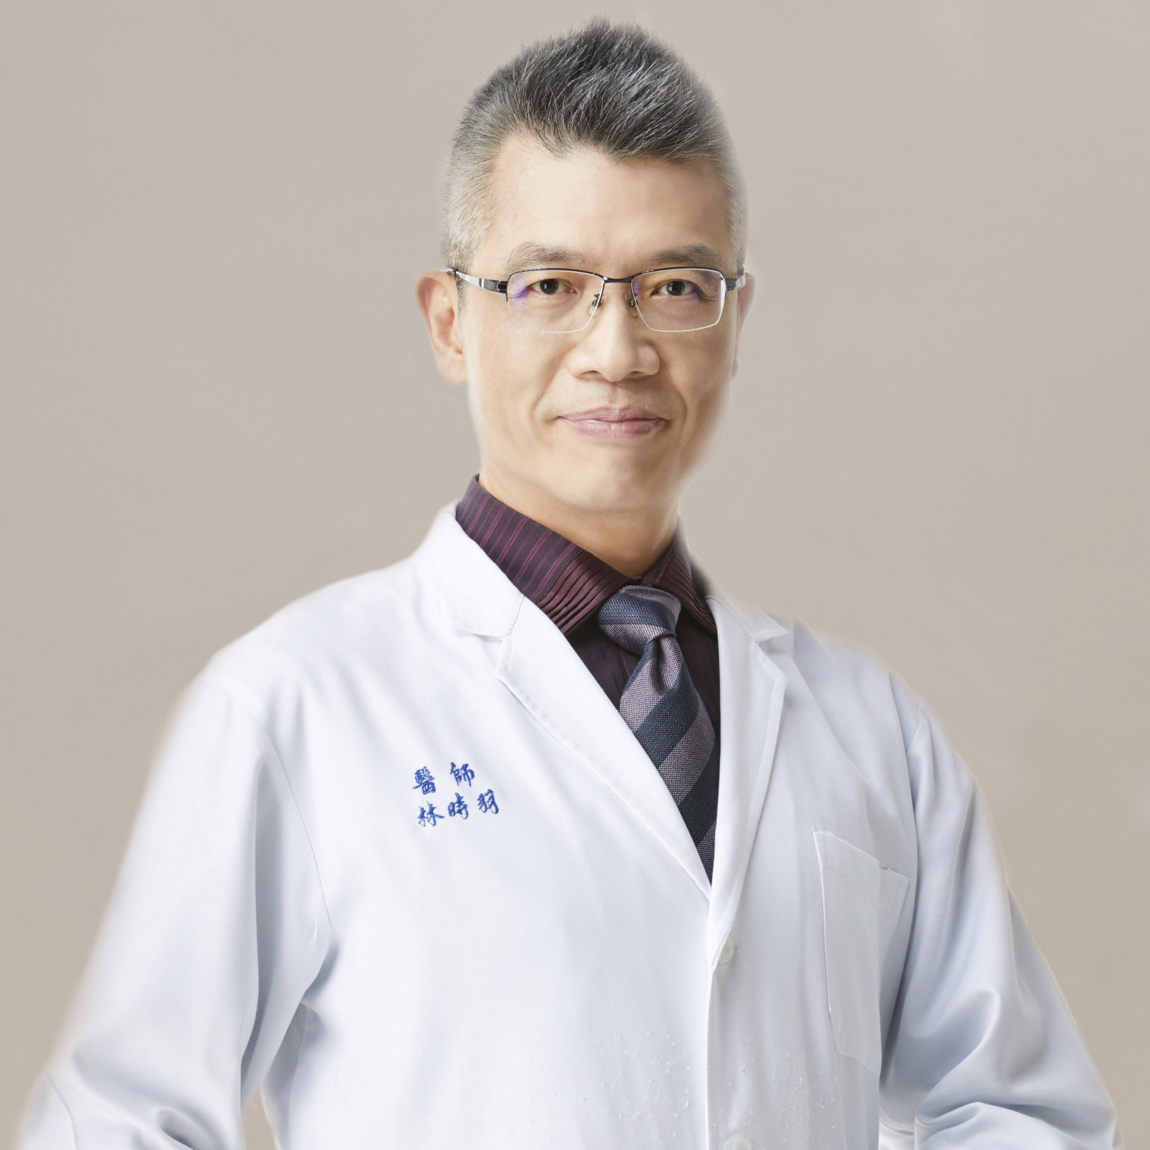 林時羽 Shyr-Yeu Lin, MD, PhD., 副院長.